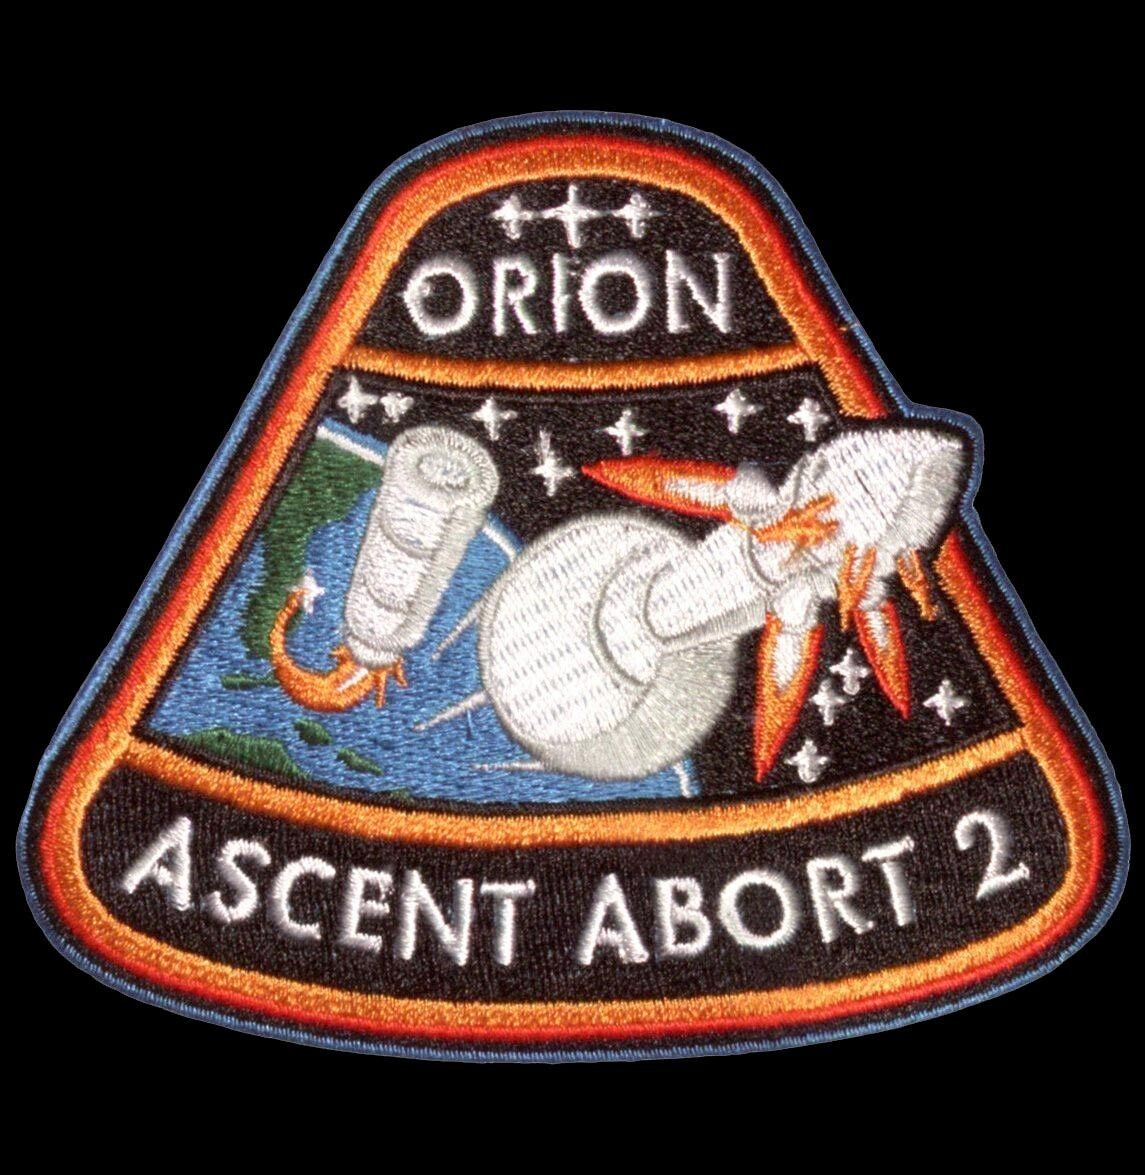 nasa patches for sale - HD1145×1175